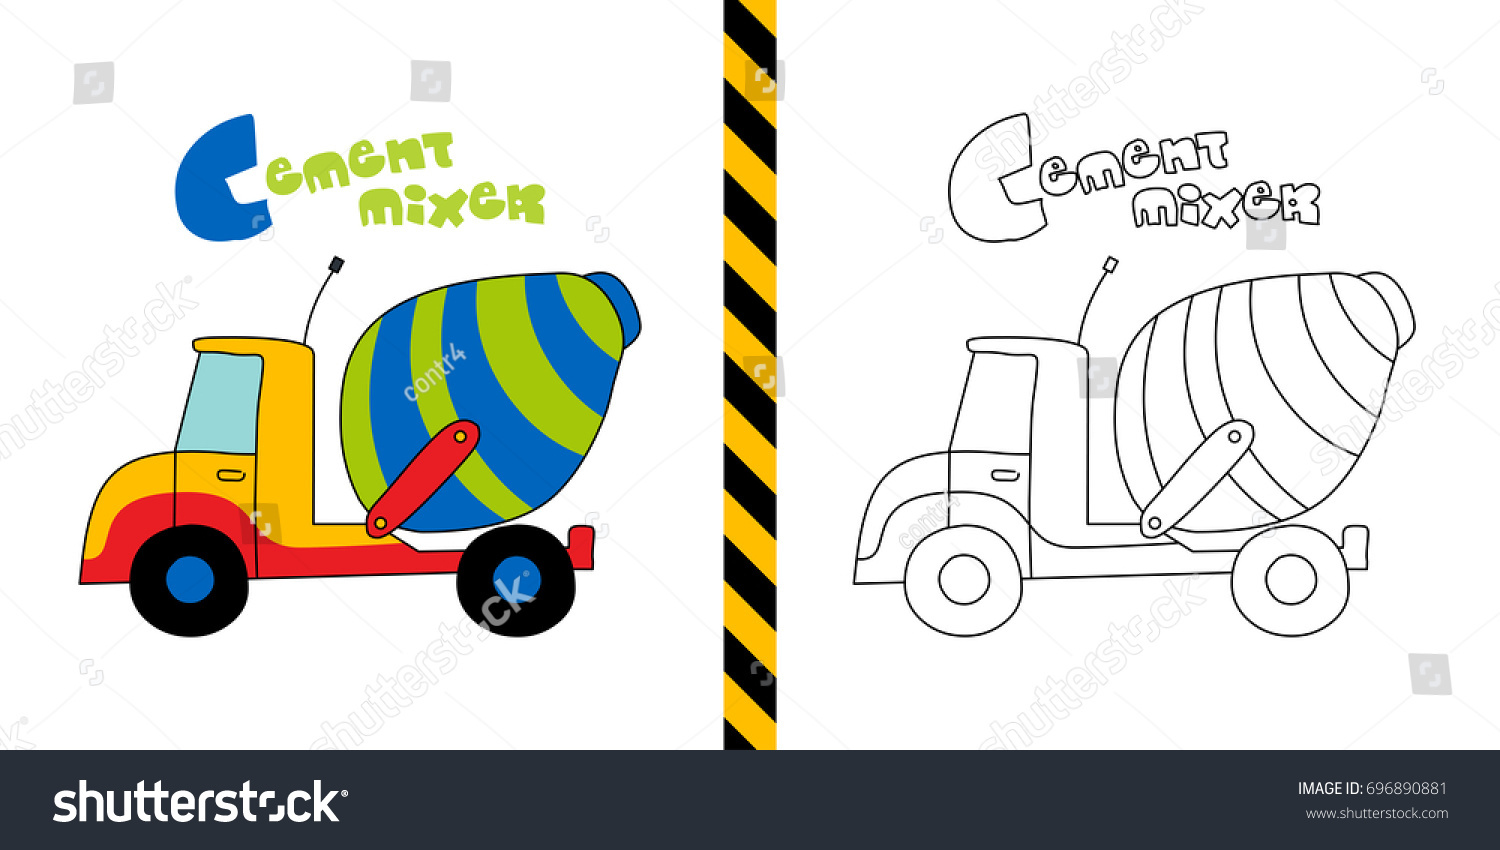 1500x850 How To Draw Cement Mixer Truck Coloring Pages Kids Learn Drawing